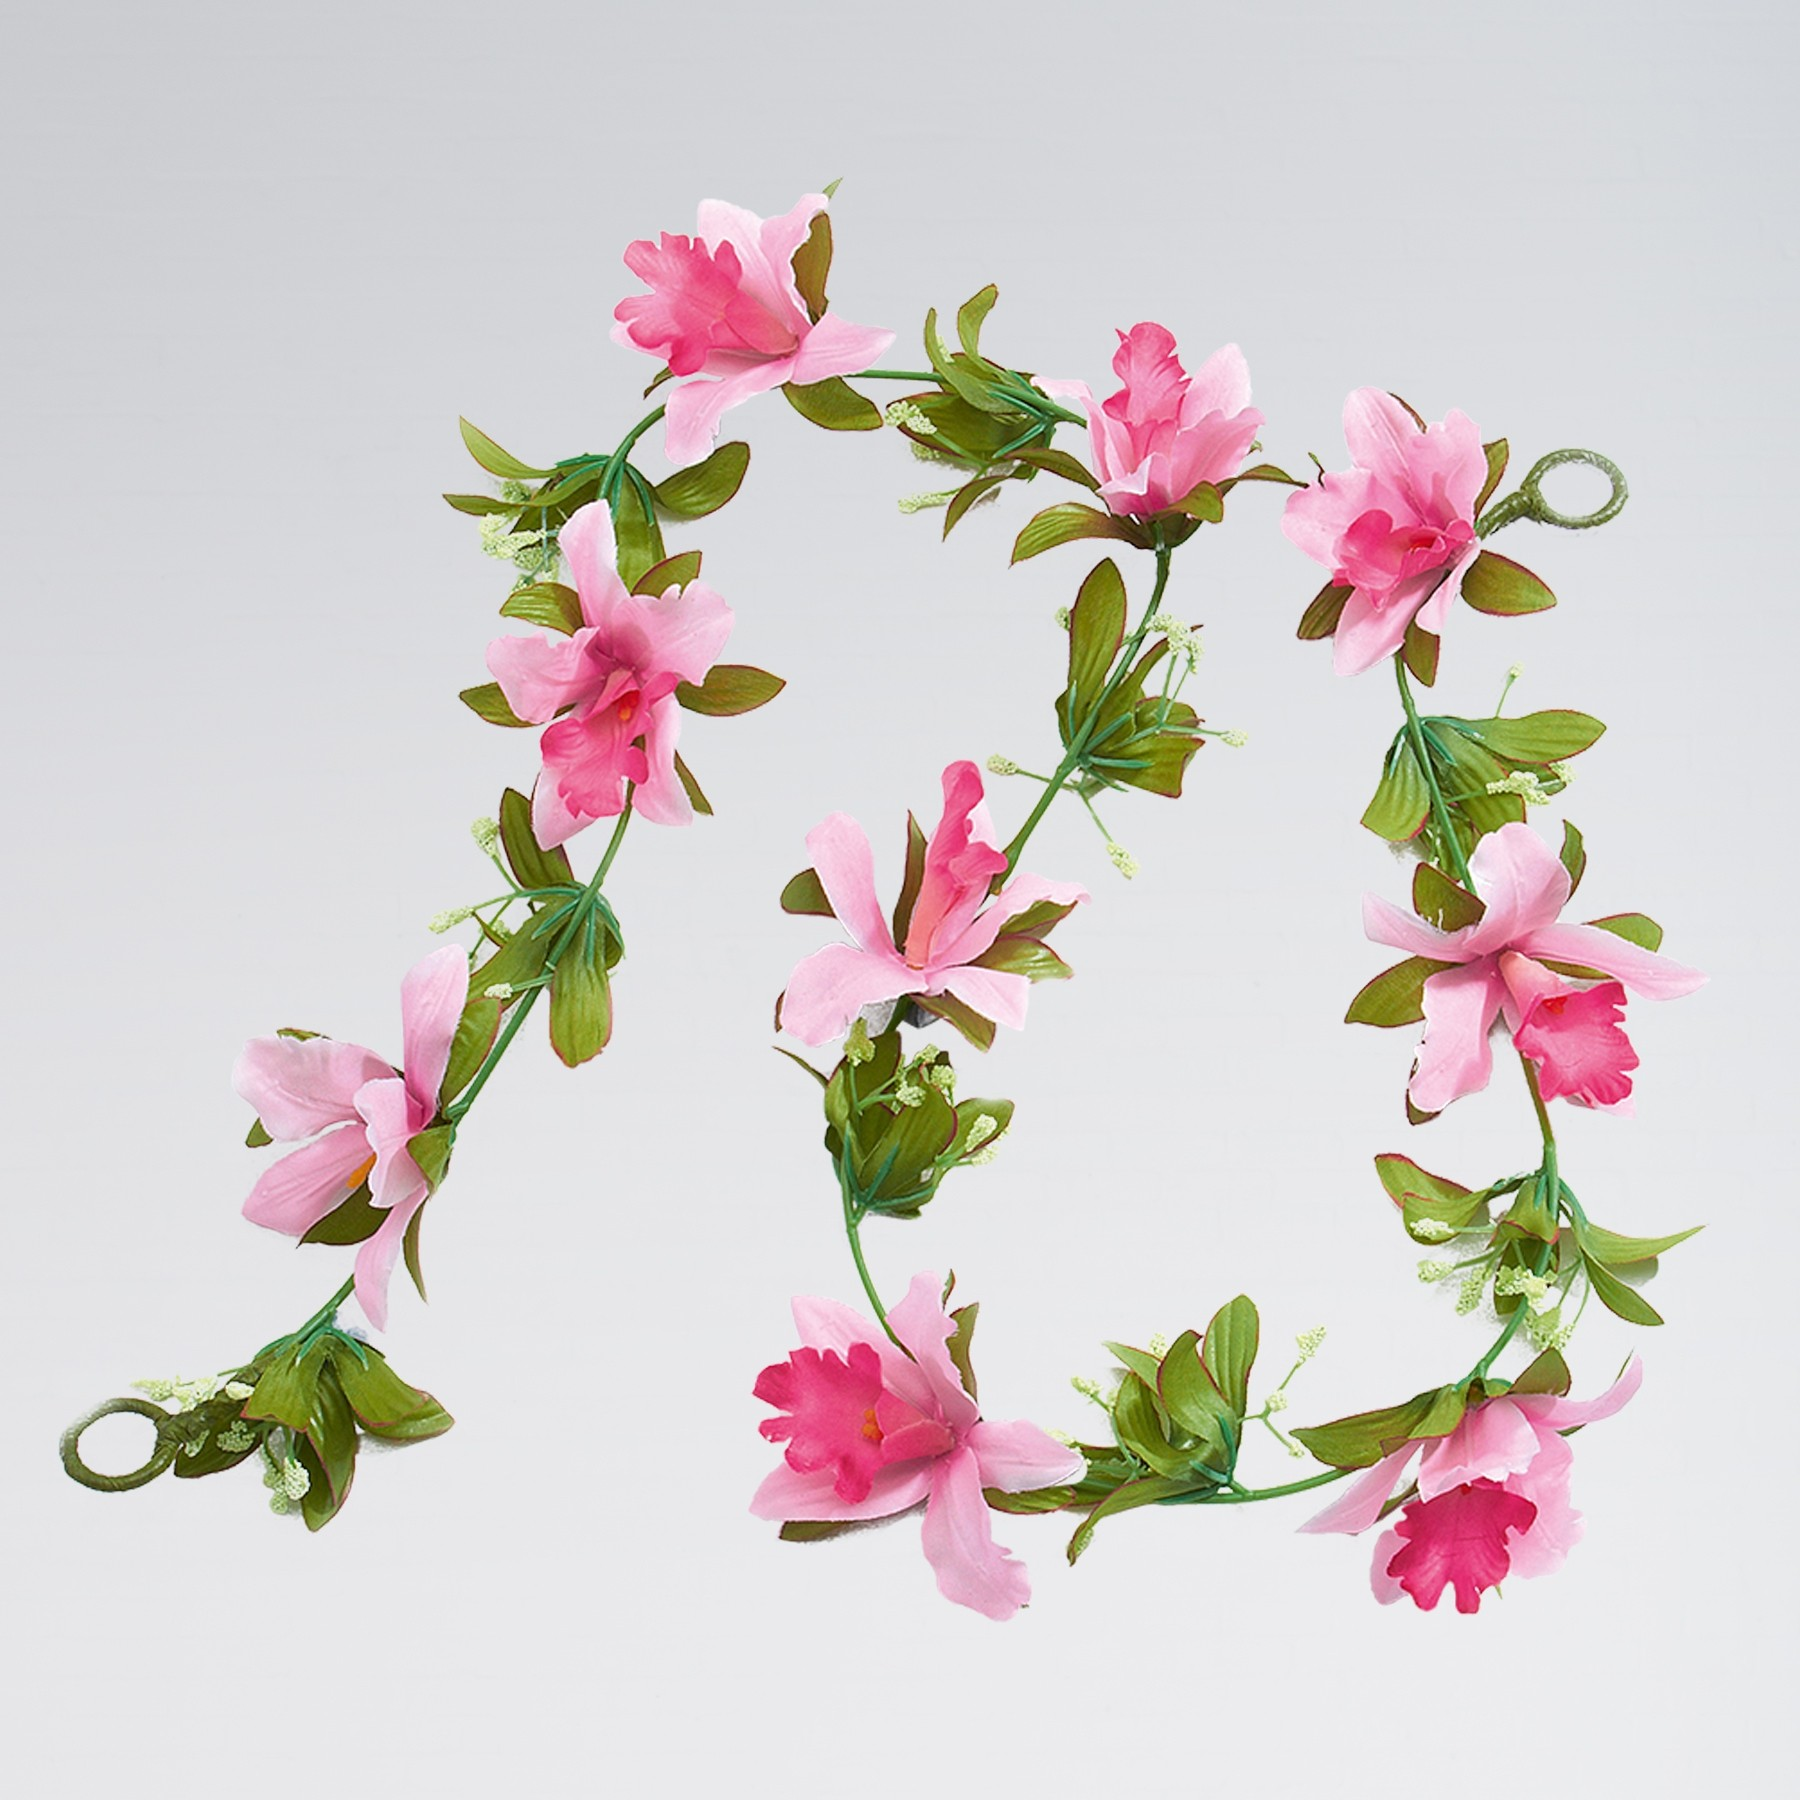 Artificial Flower Garland - Pale Pink (1m approx)